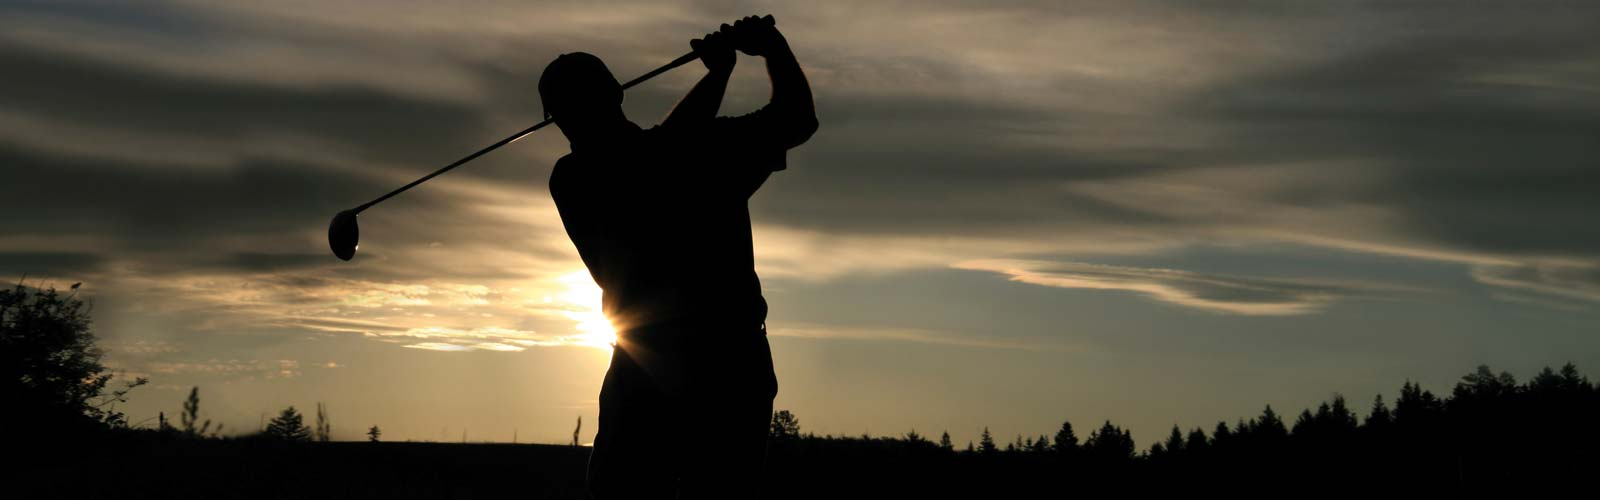 Golfer swing a club at dusk